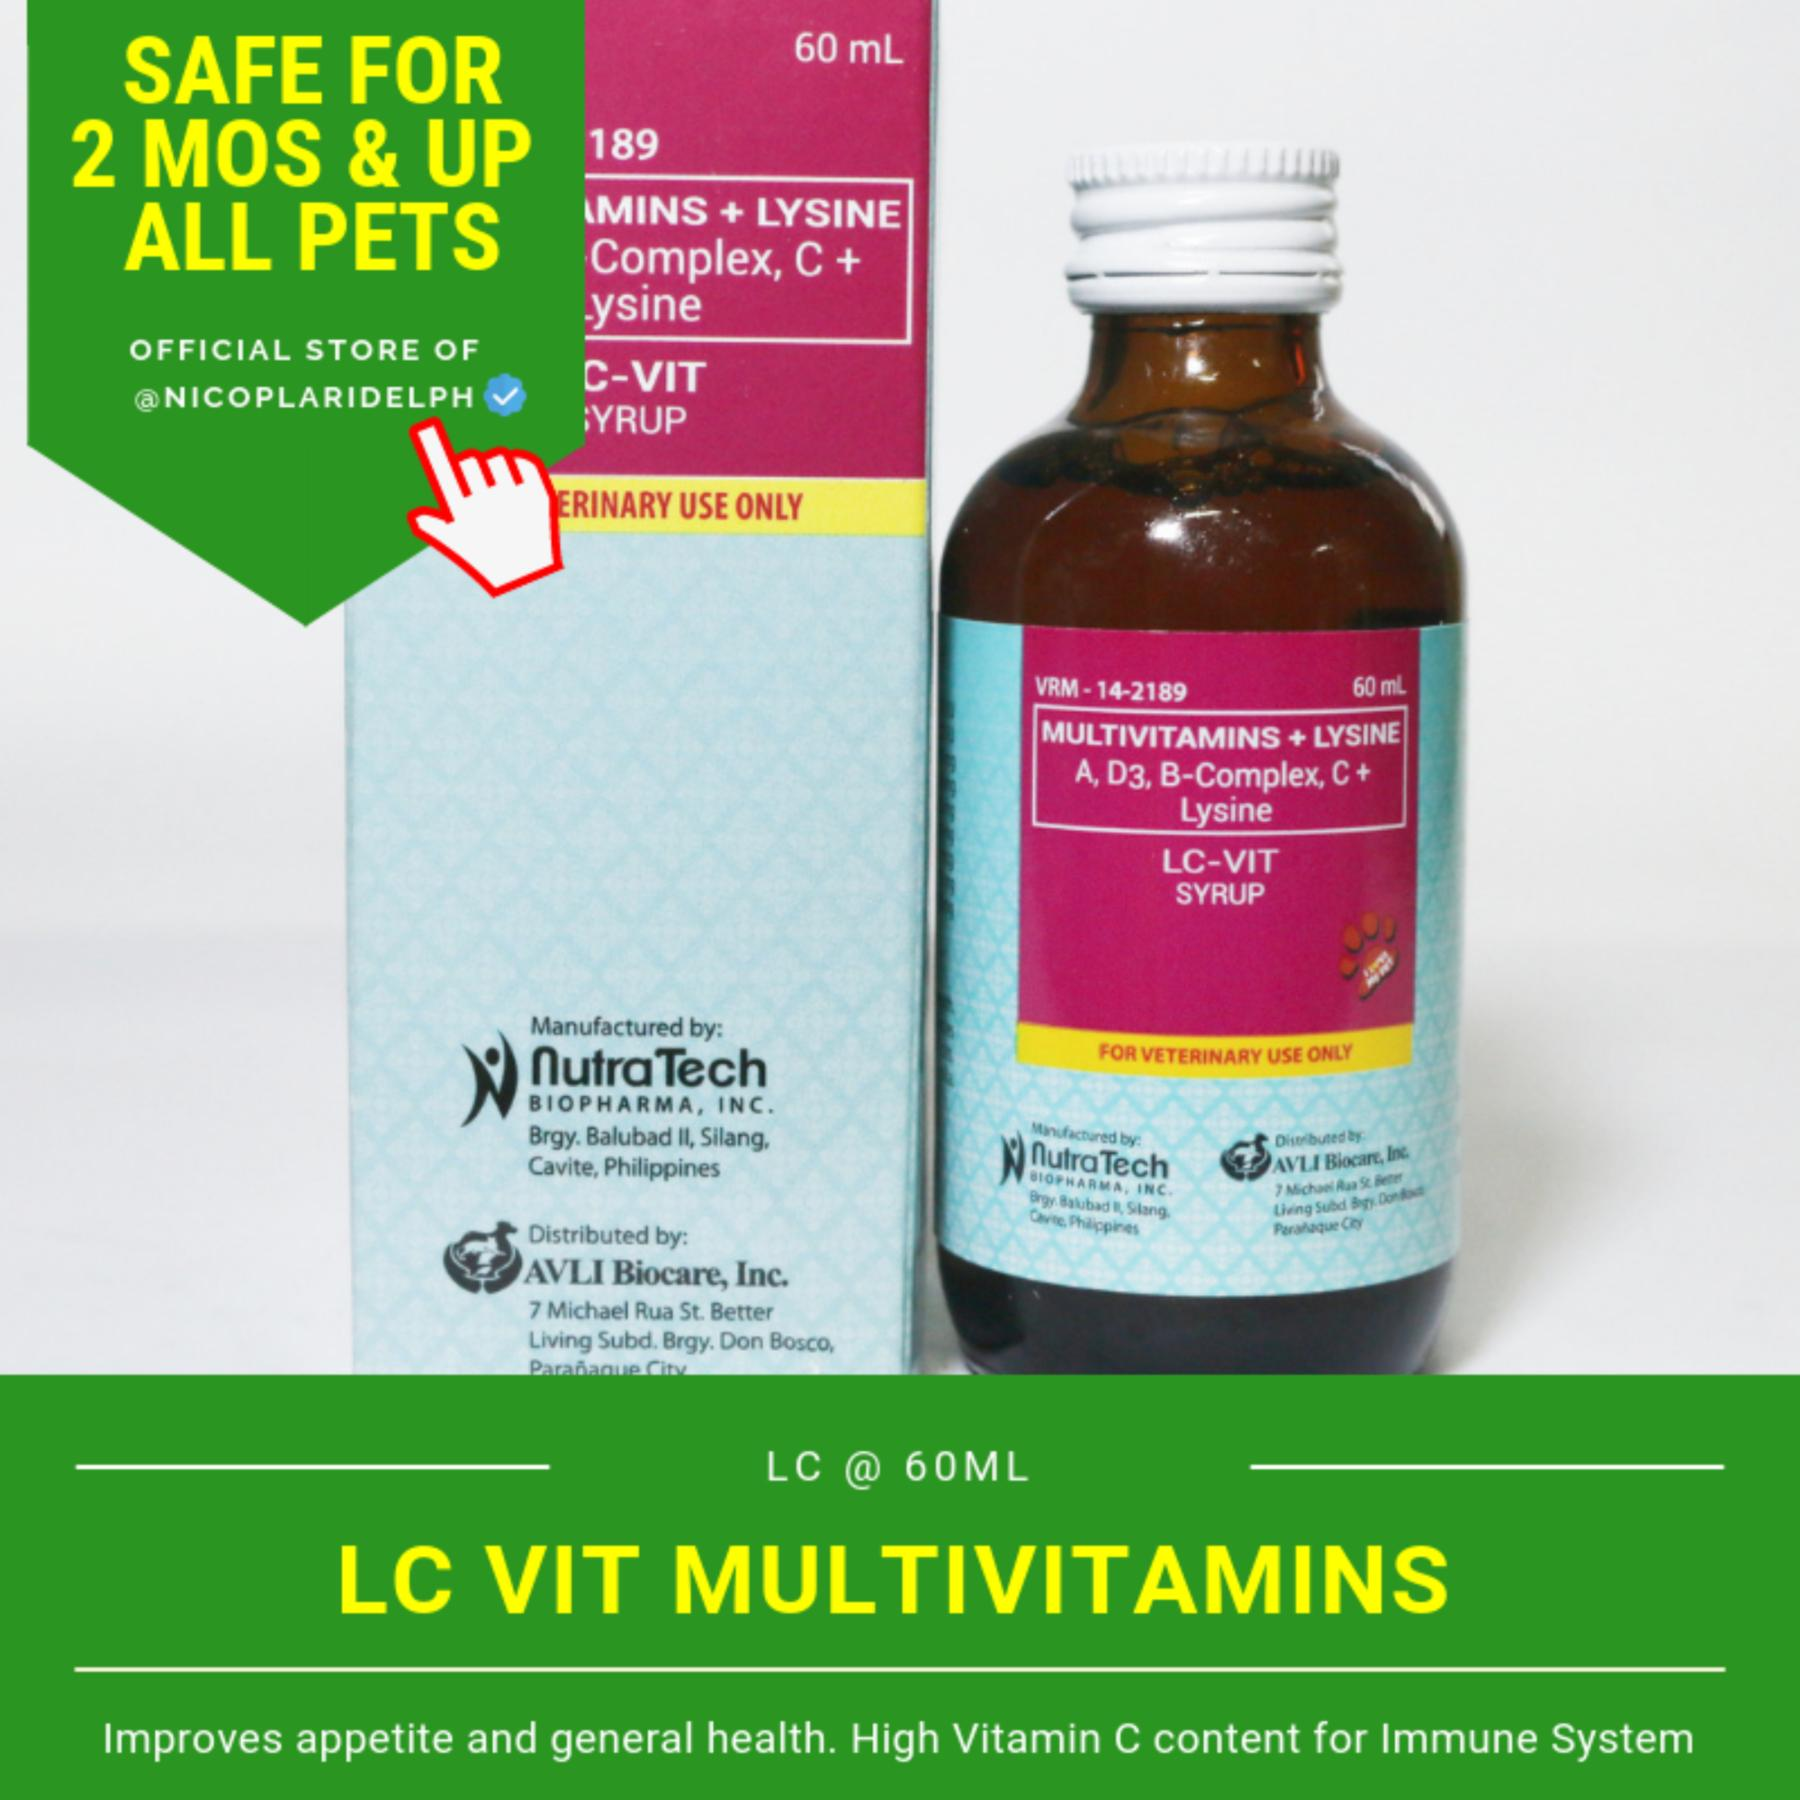 LC Vit Multivitamins for pets (60ml)